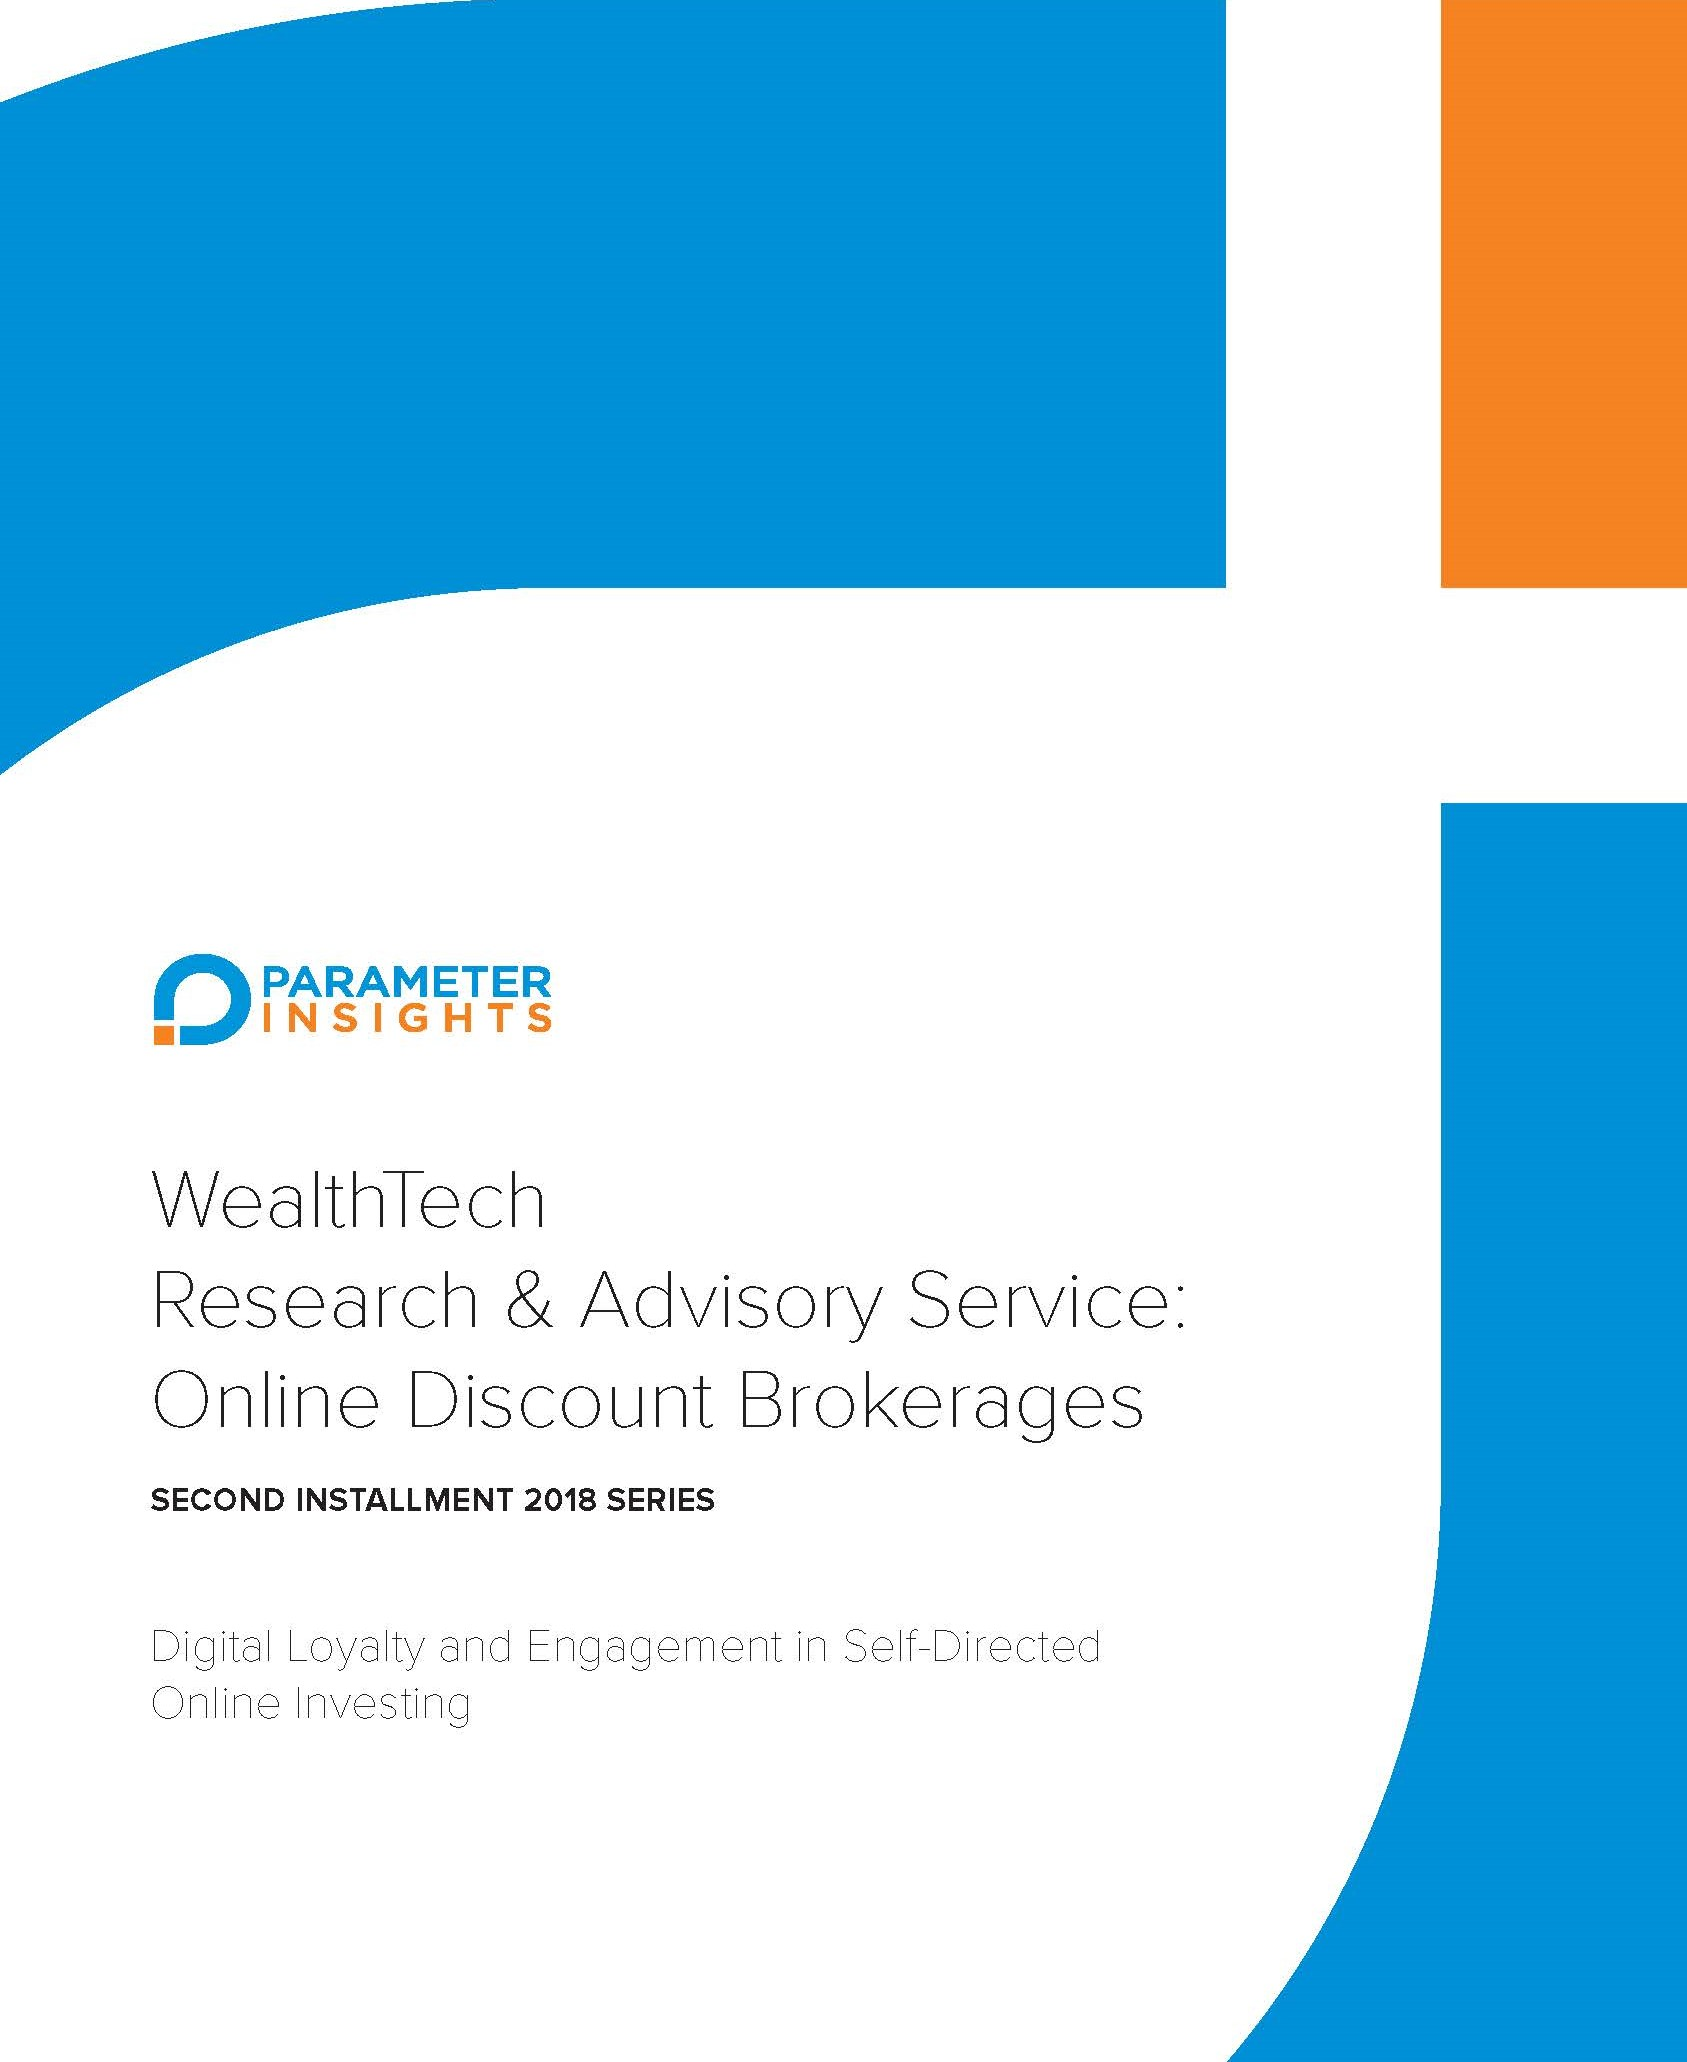 ParameterInsights_WealthTech_Research_and_Advisory_Service_ODBs_Second_Installment_2018_TITLE_PAGE1.jpg